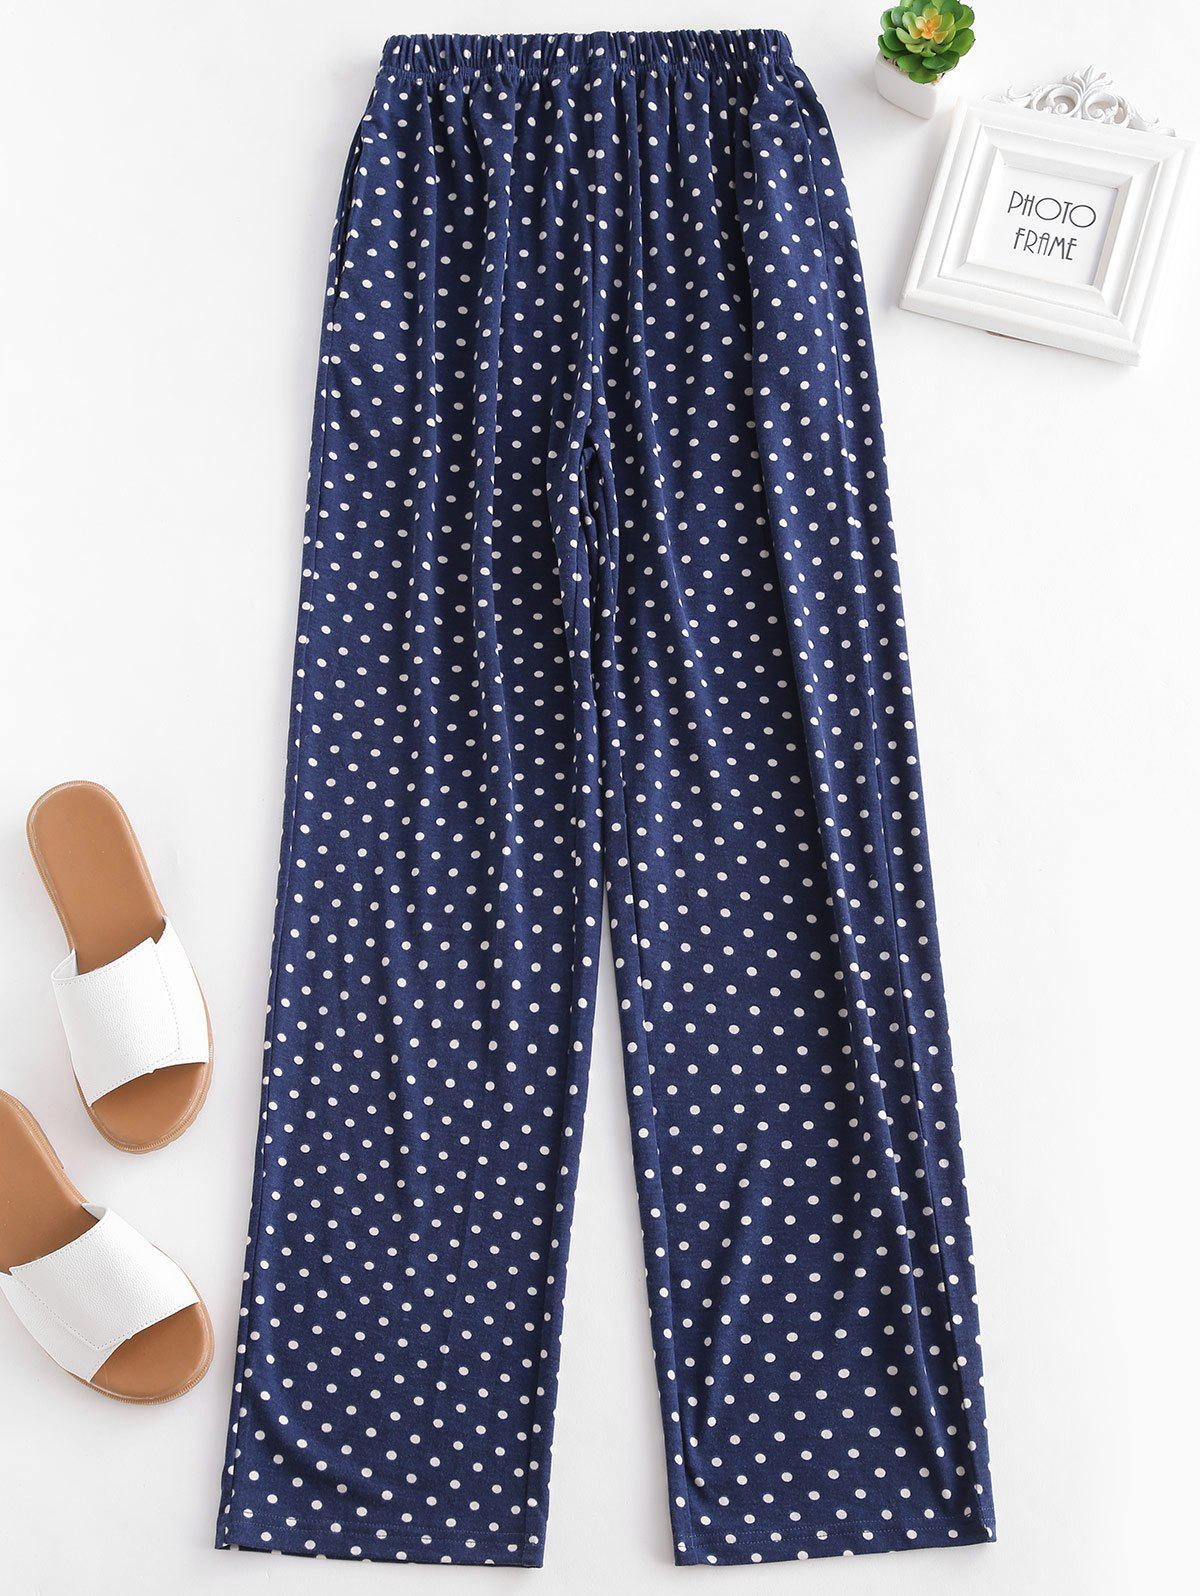 Polka Dot Print Sleeping Pants - CADETBLUE S